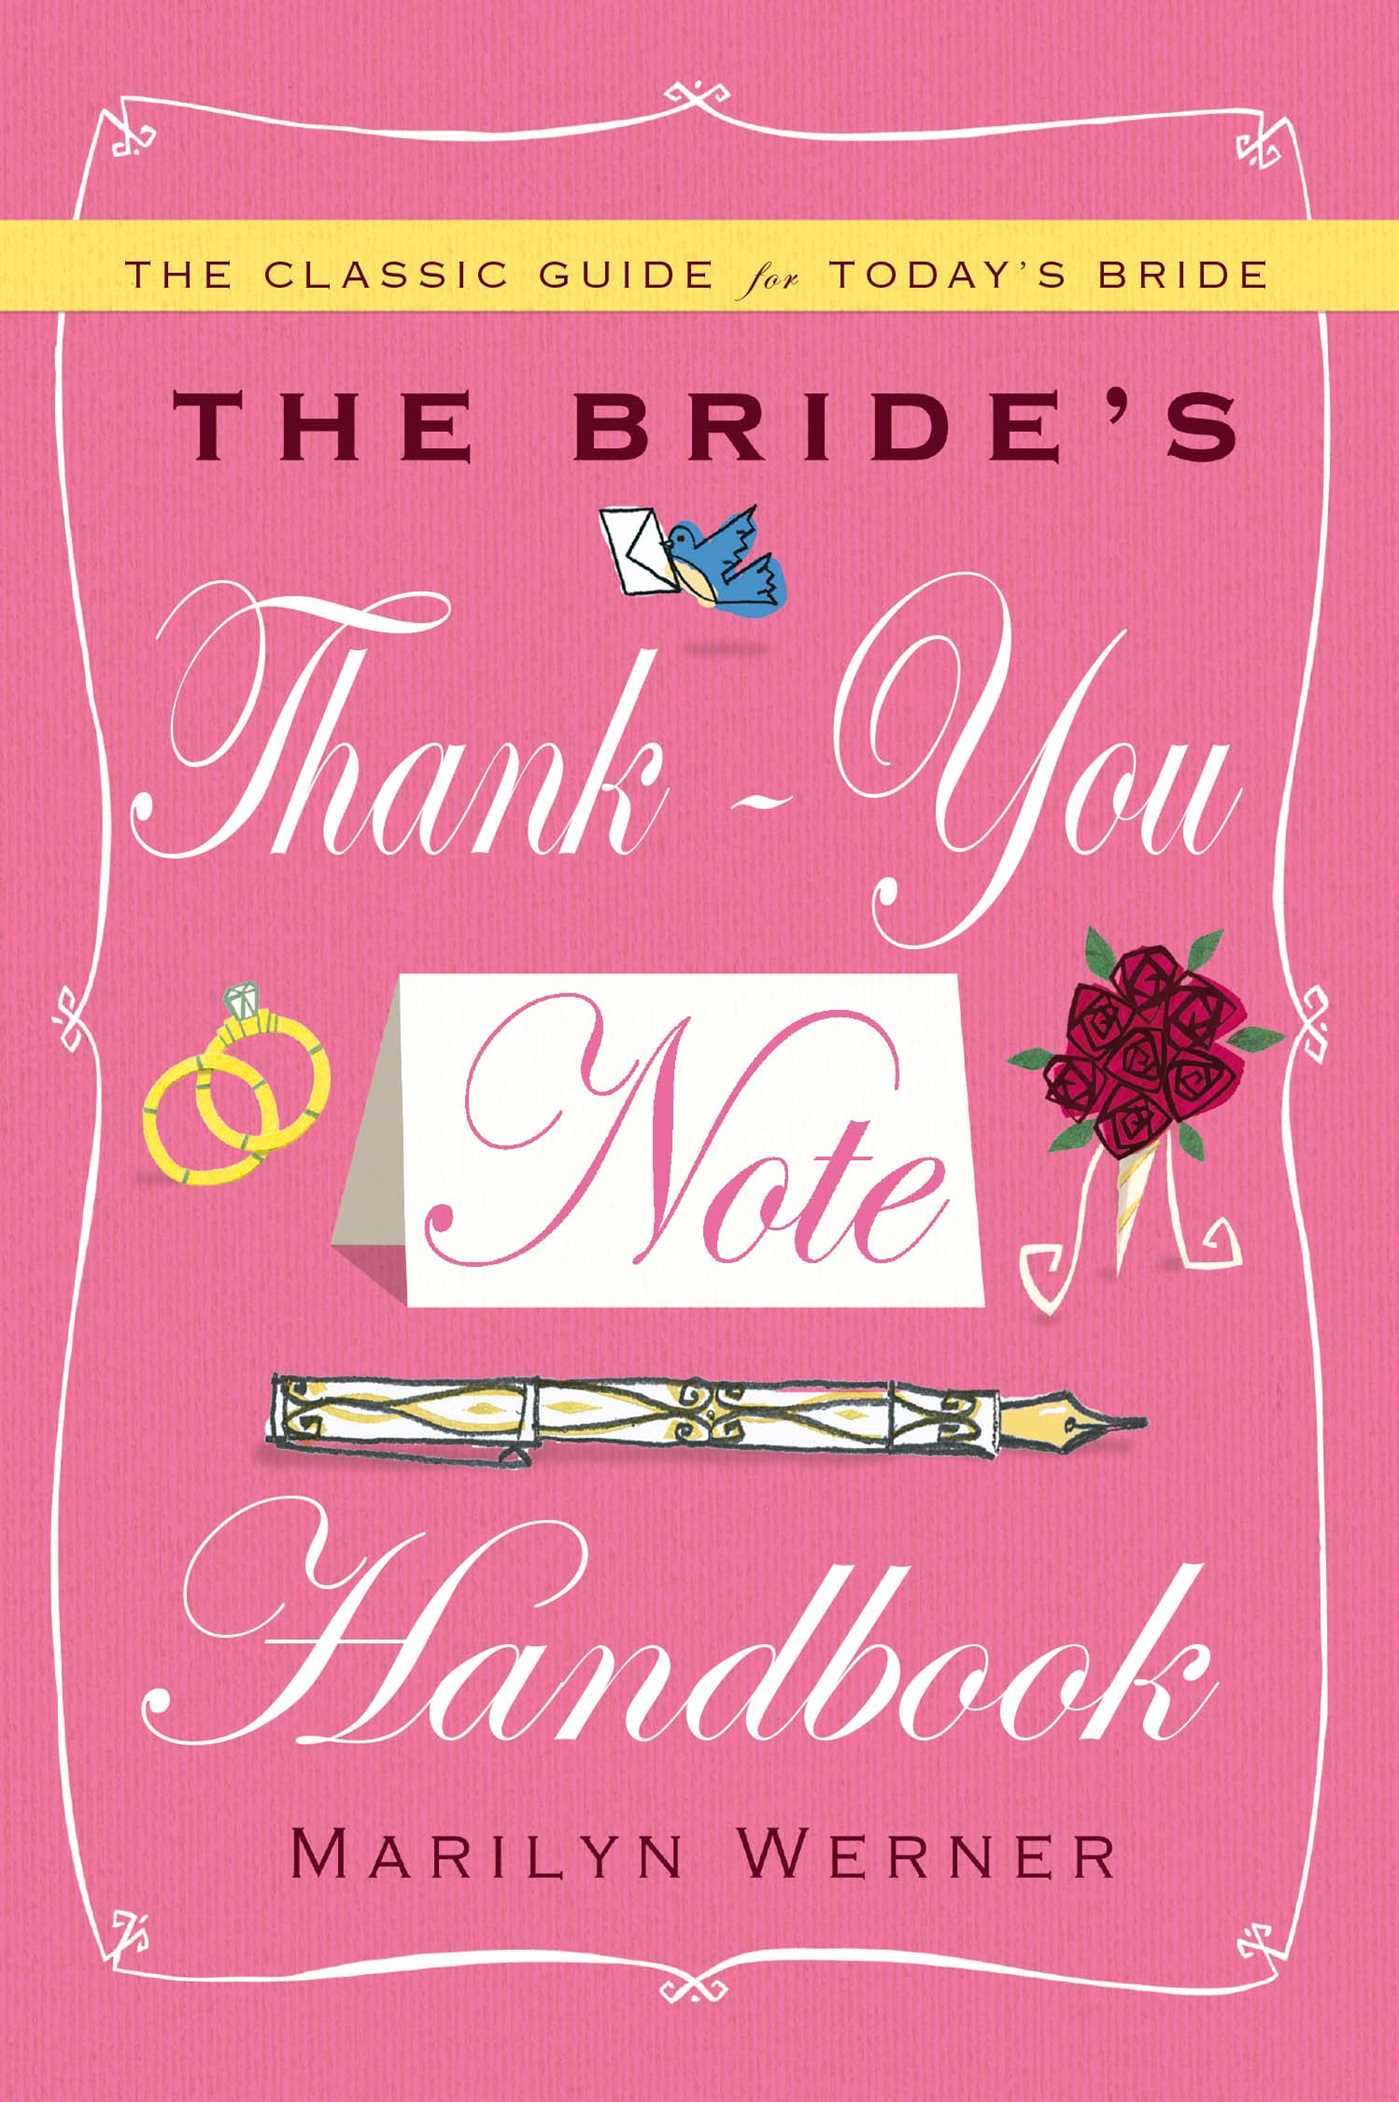 The brides thank you note handbook 9781439189269 hr